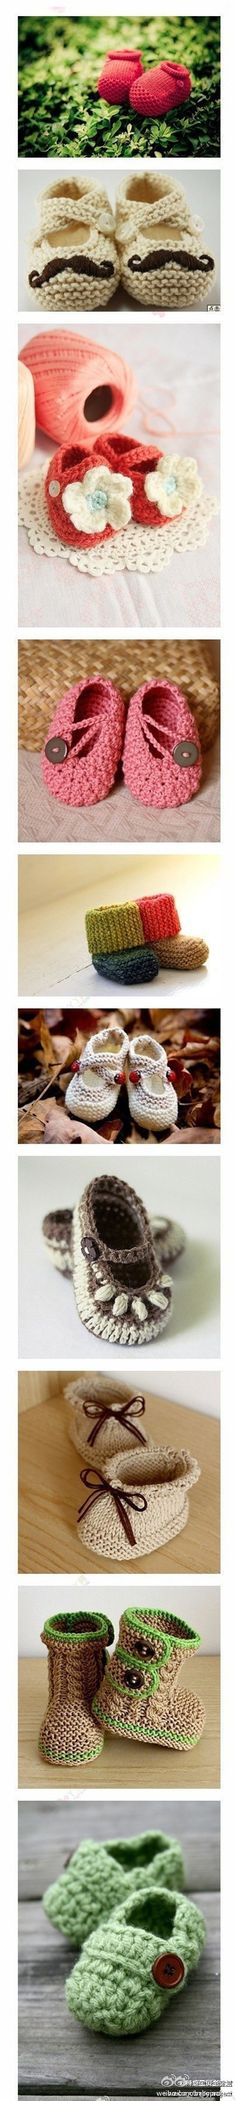 lovely crotchet baby shoes #crochet